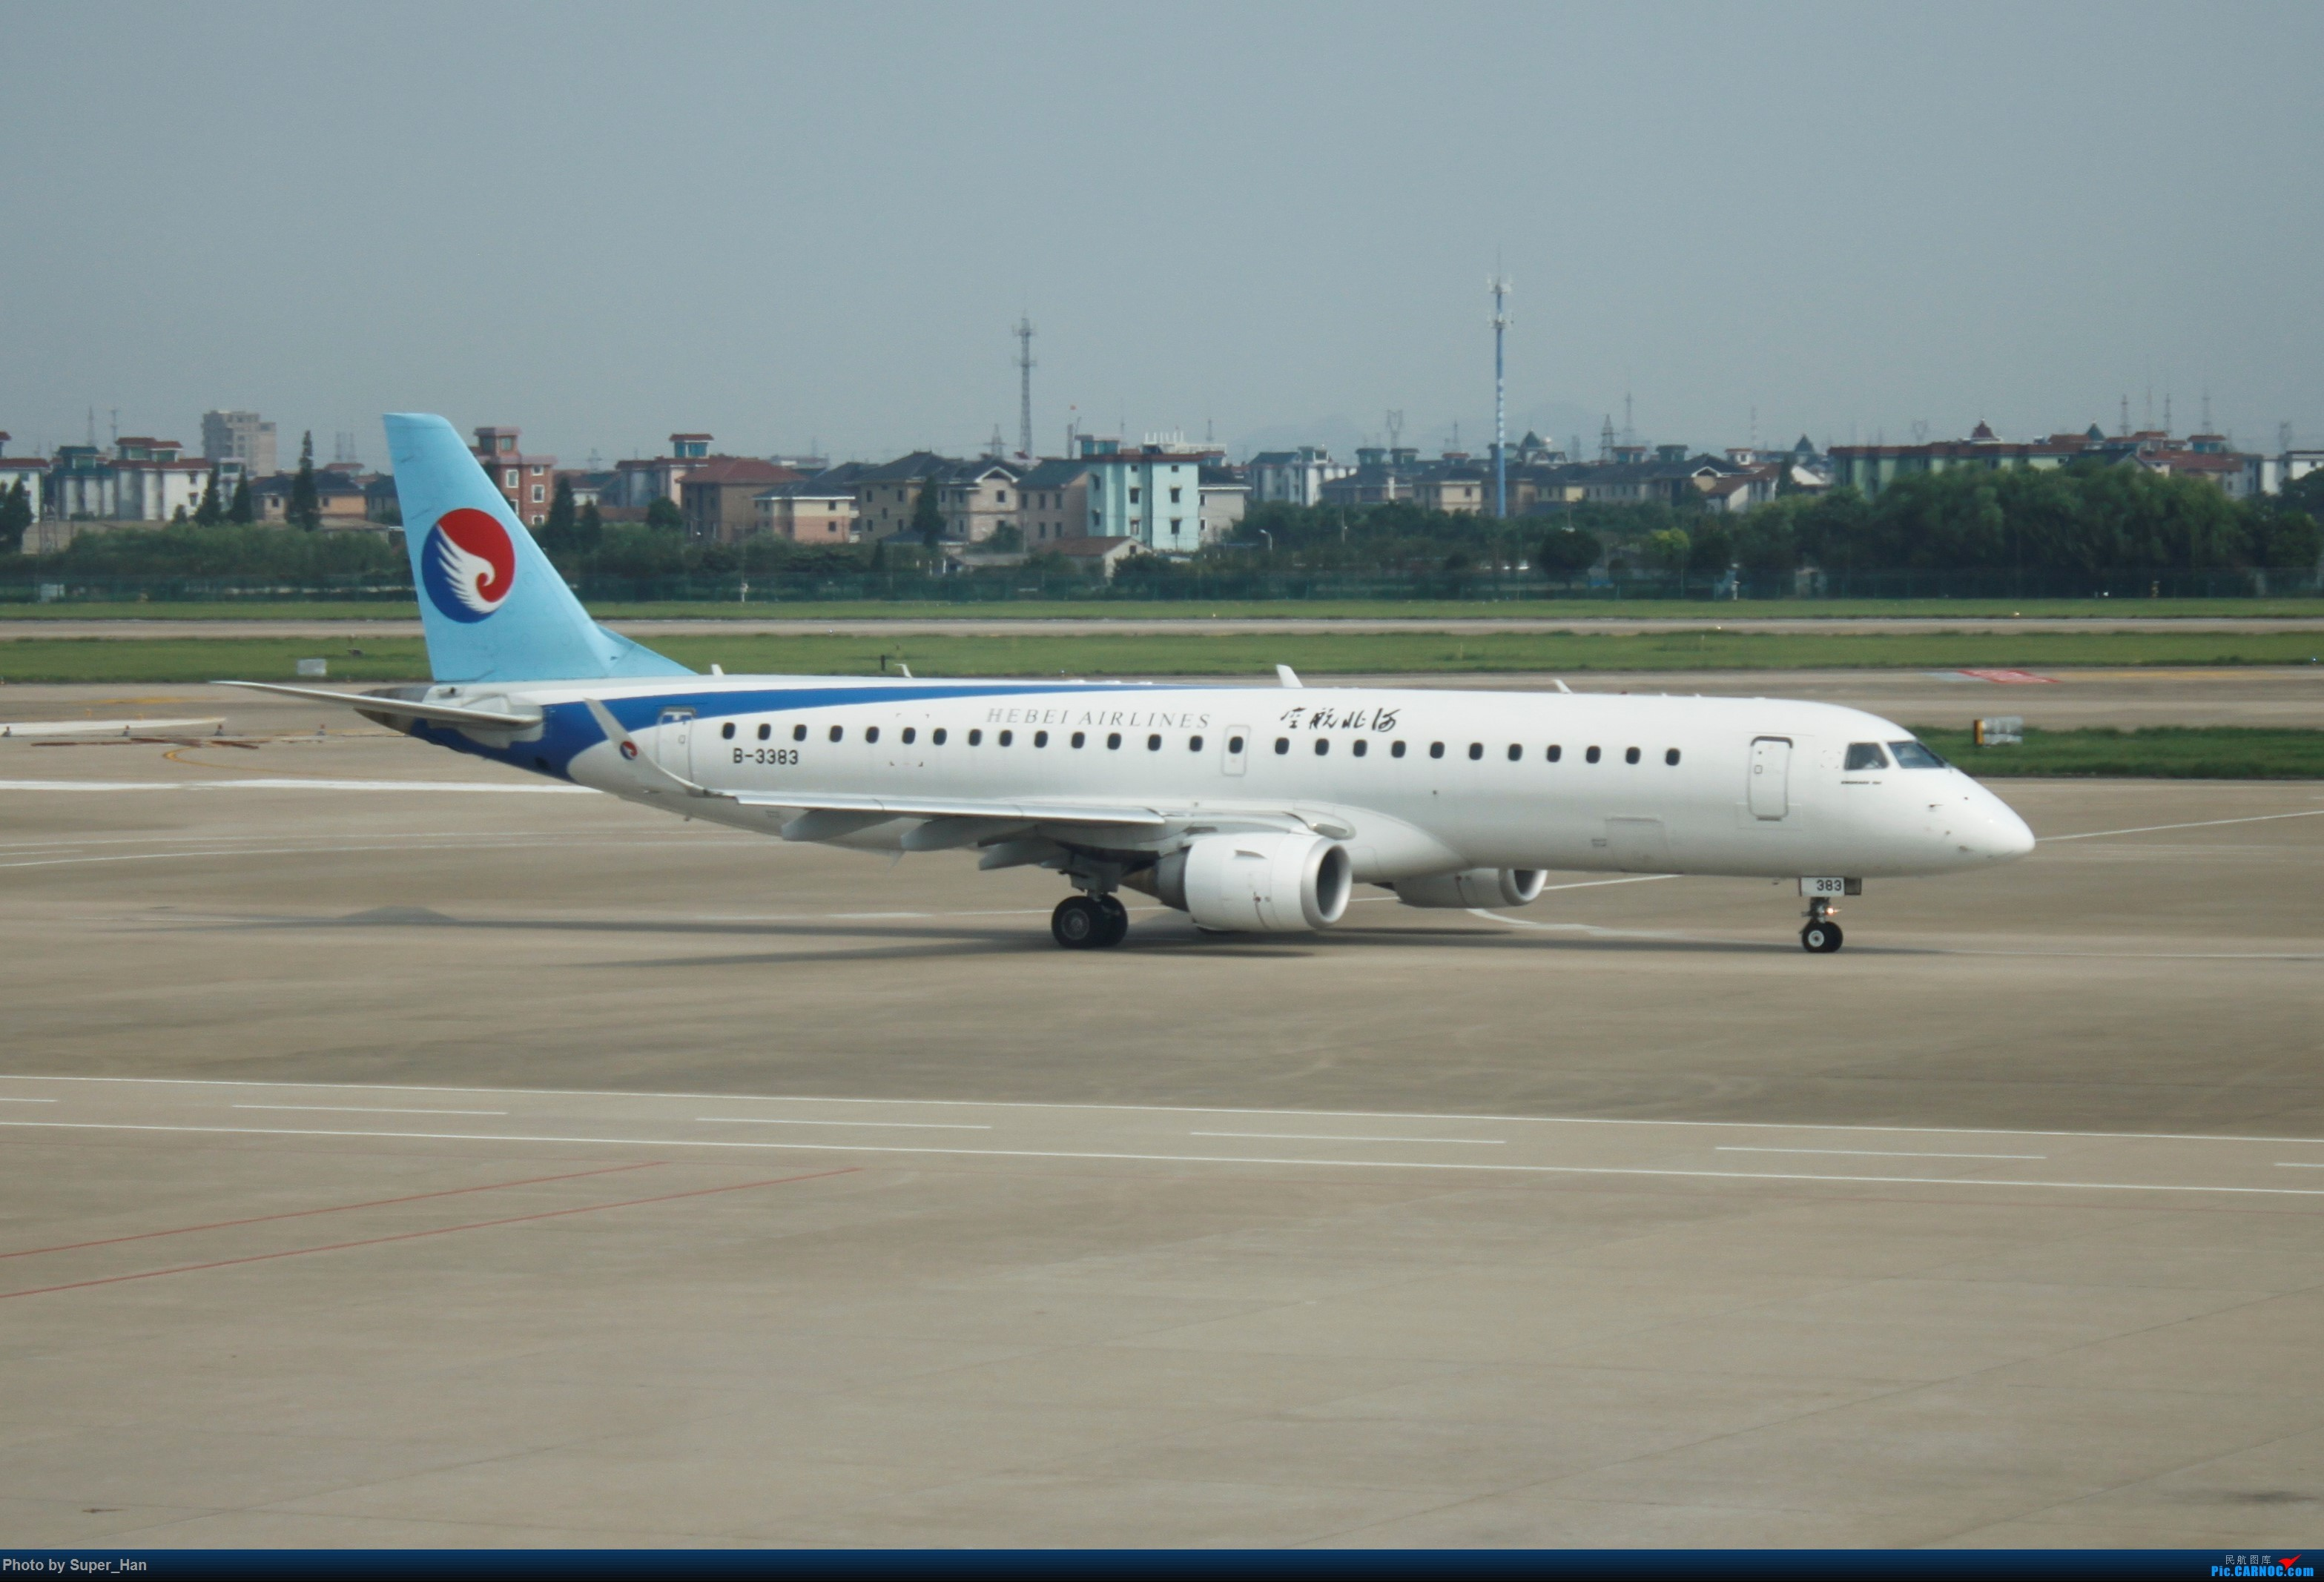 Re:[原创]HGH-SZX CAN-SHA EMBRAER E-190 B-3383 中国杭州萧山国际机场